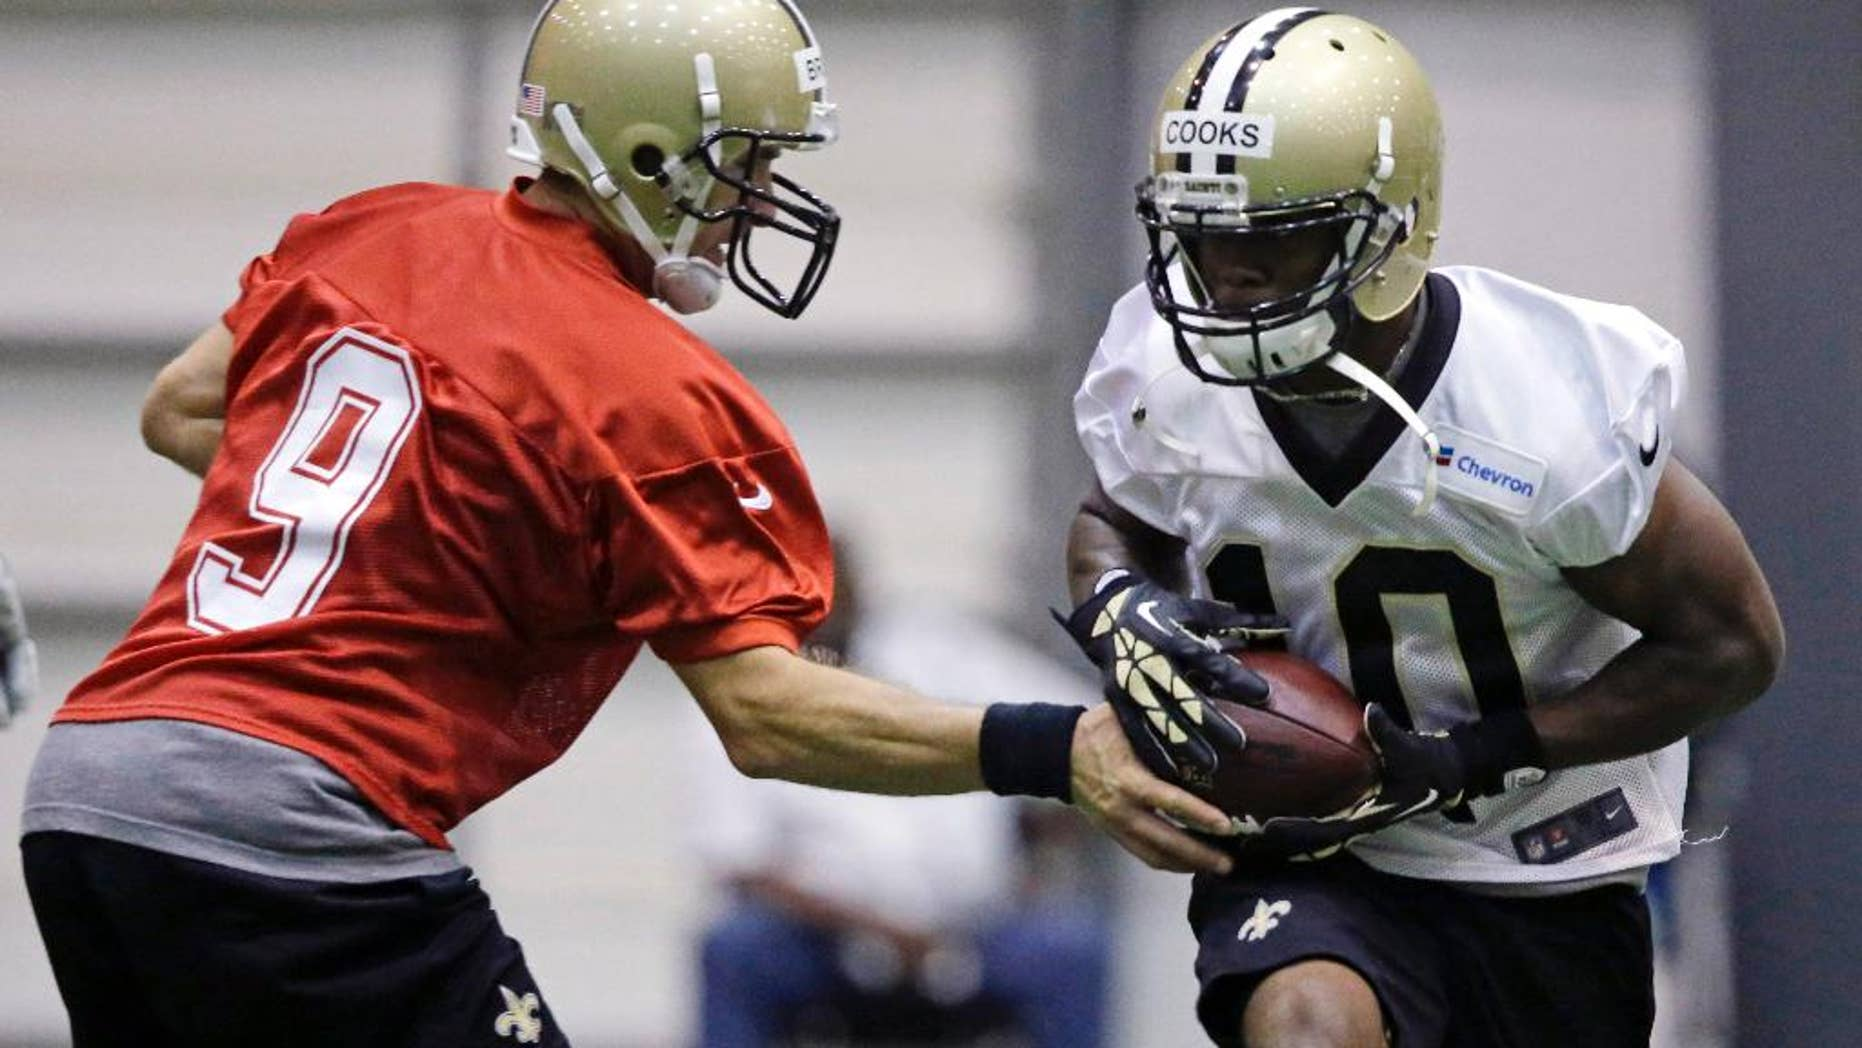 New Orleans Saints quarterback Drew Brees (9) hands off to first round draft pick Brandin Cooks (10) during NFL football minicamp  at the team's training facility in Metairie, La., Thursday, June 19, 2014. (AP Photo/Gerald Herbert)